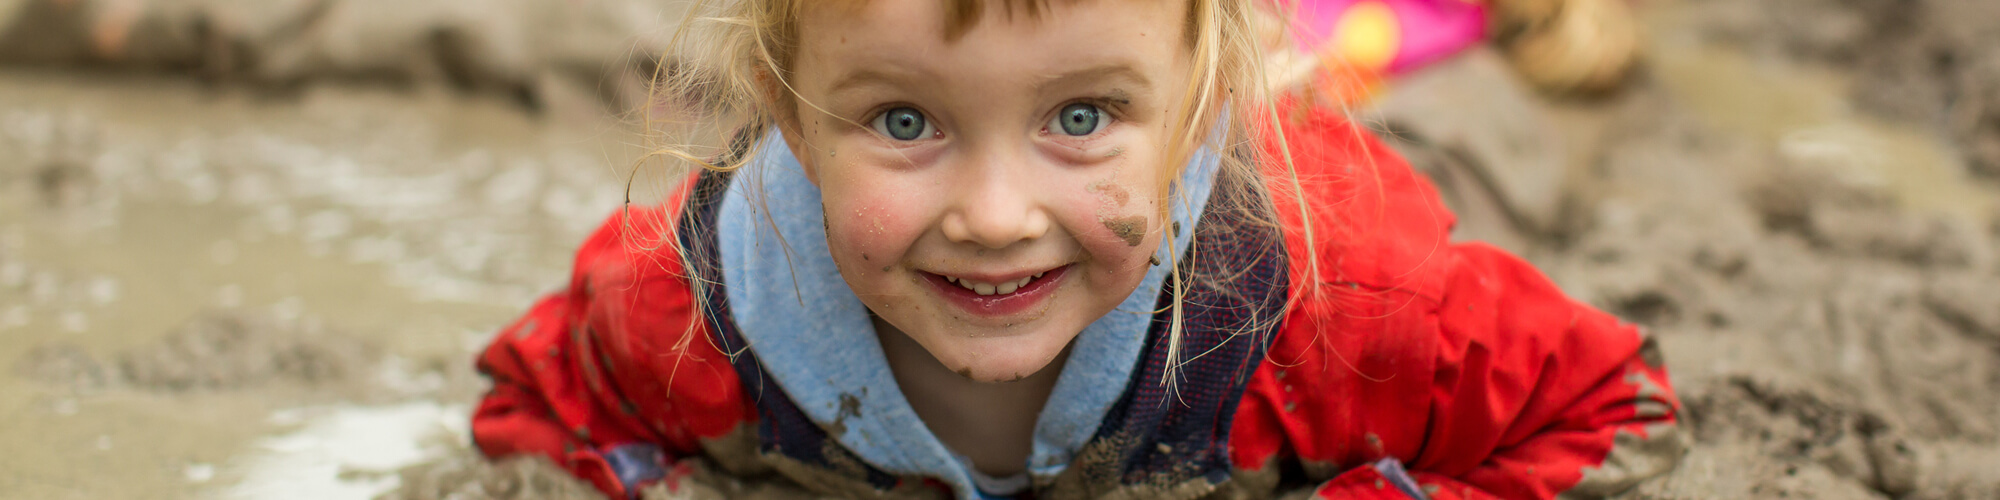 A young girl looking at the camera smiling whilst lying on her front in the mud.